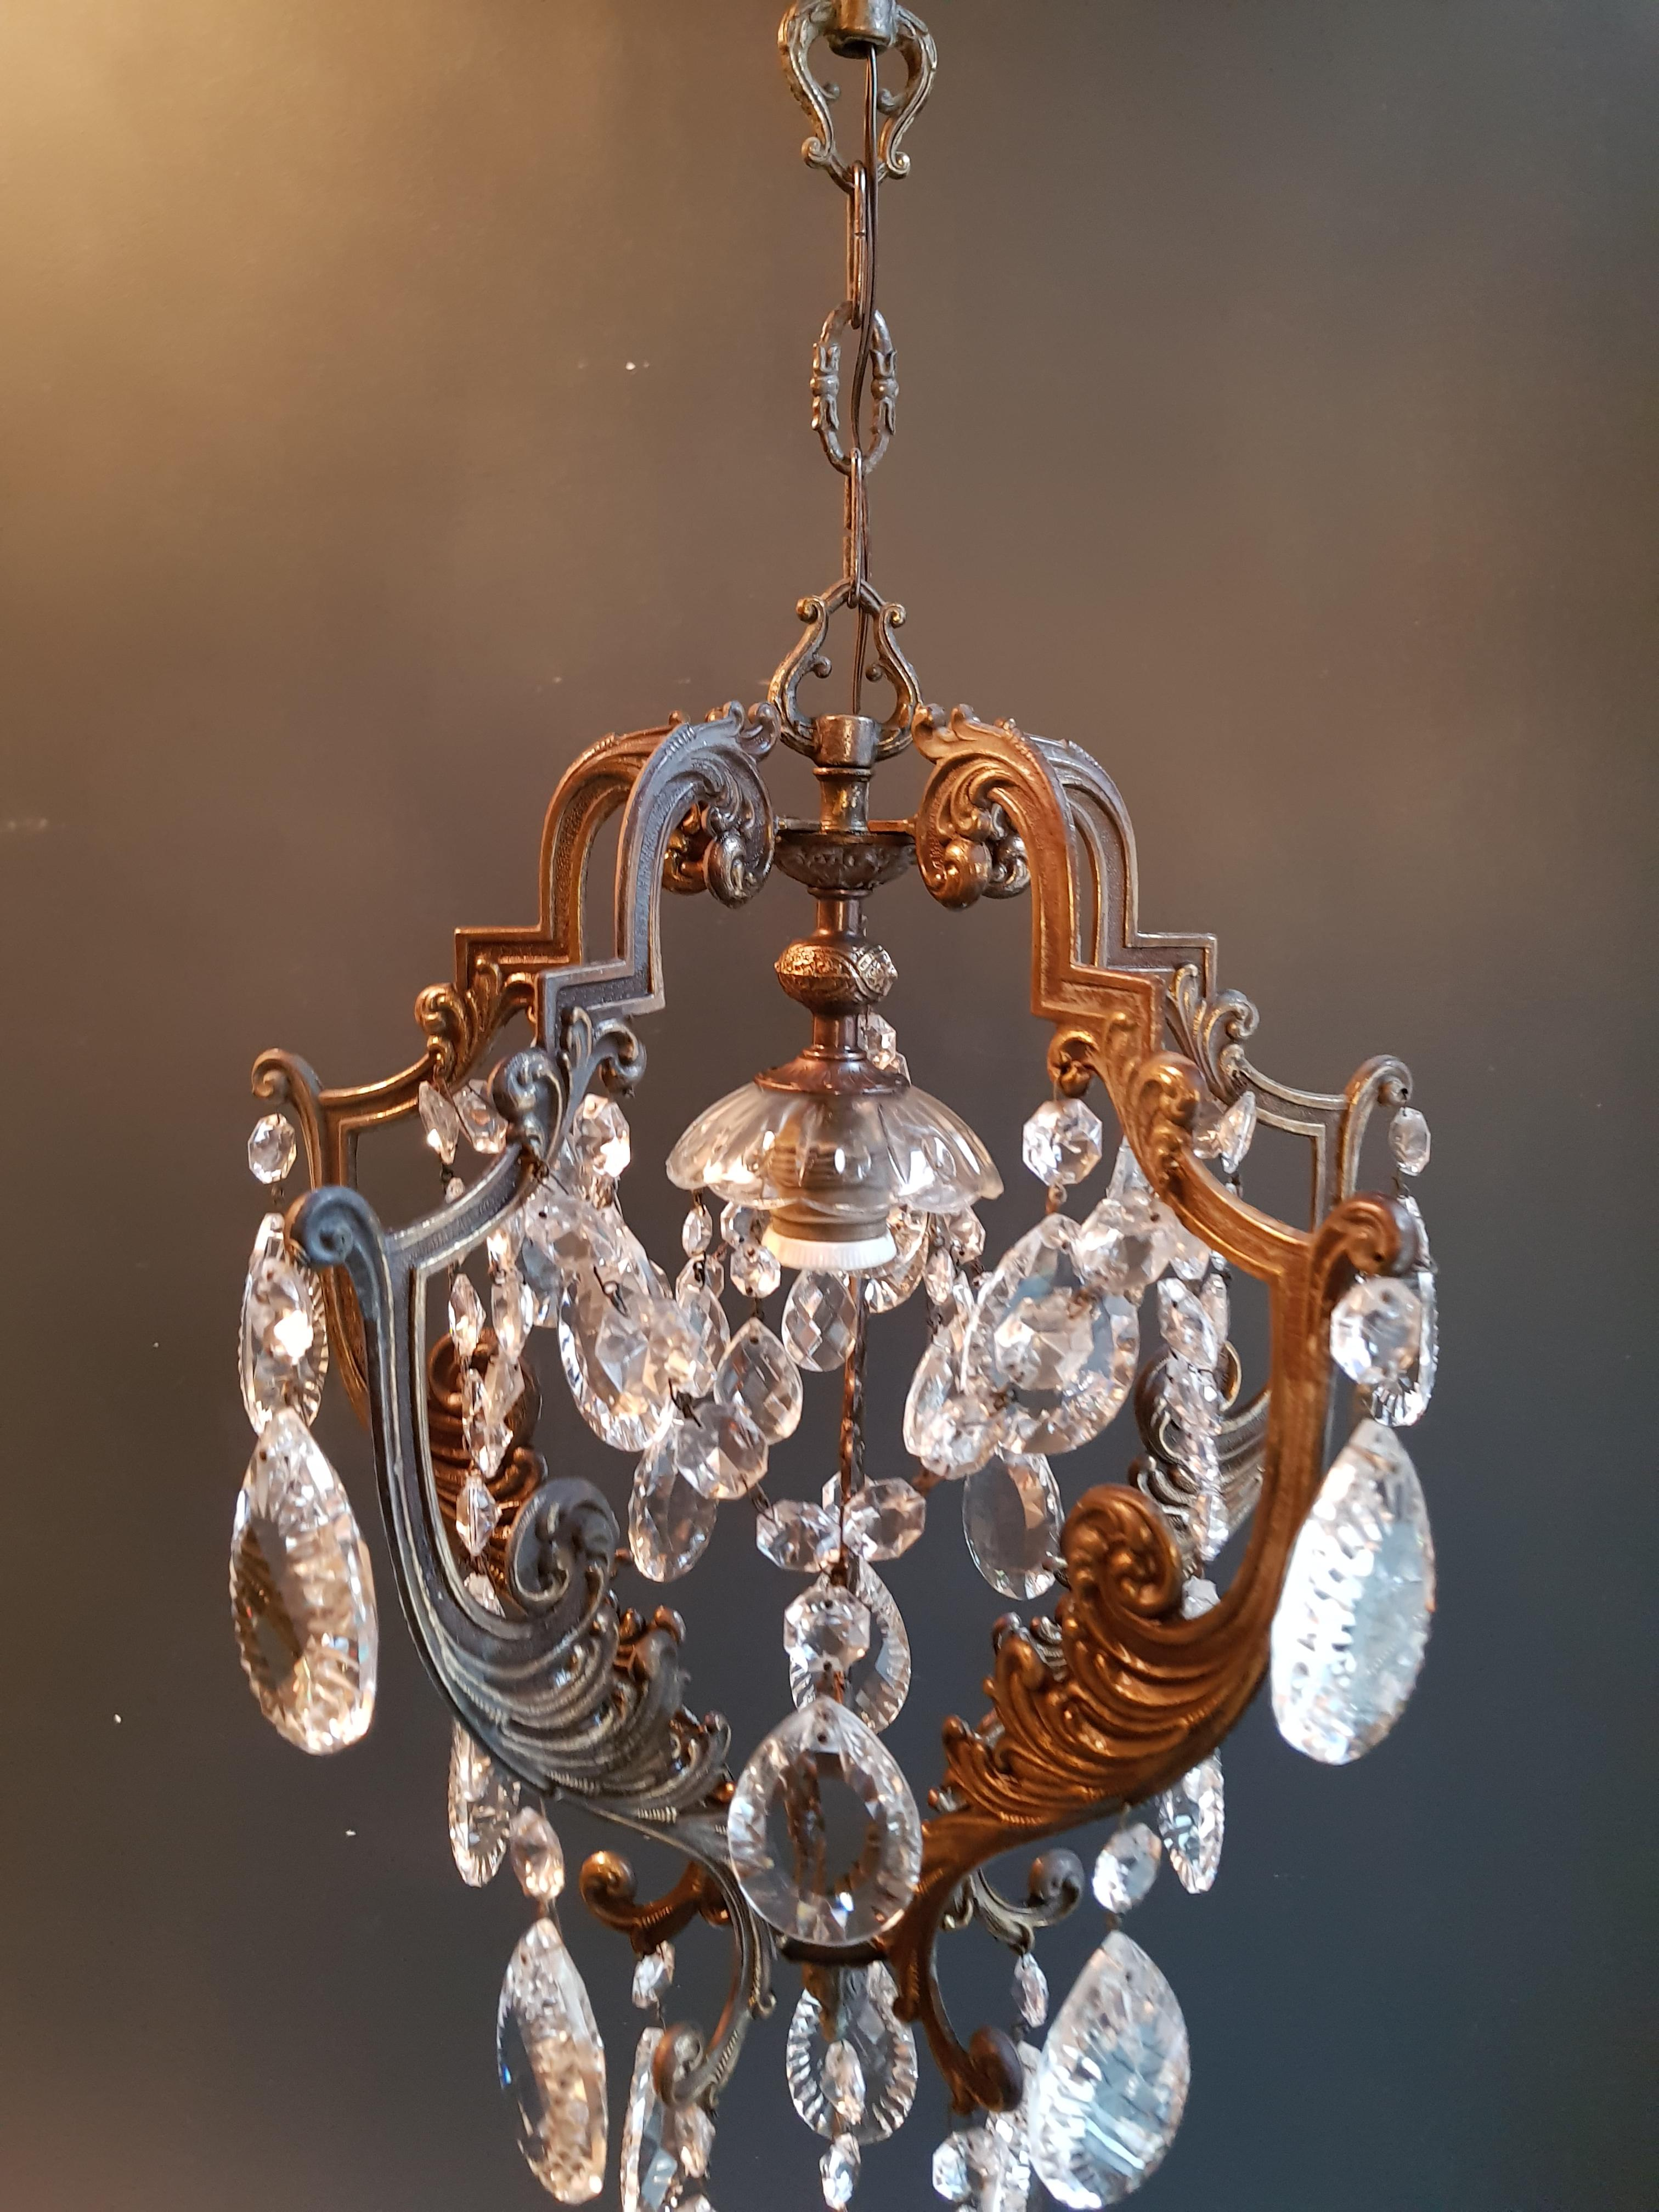 Lustre Cage Lustré Cage Chandelier Crystal Ceiling Lamp Hall Lustre Antique Art Nouveau